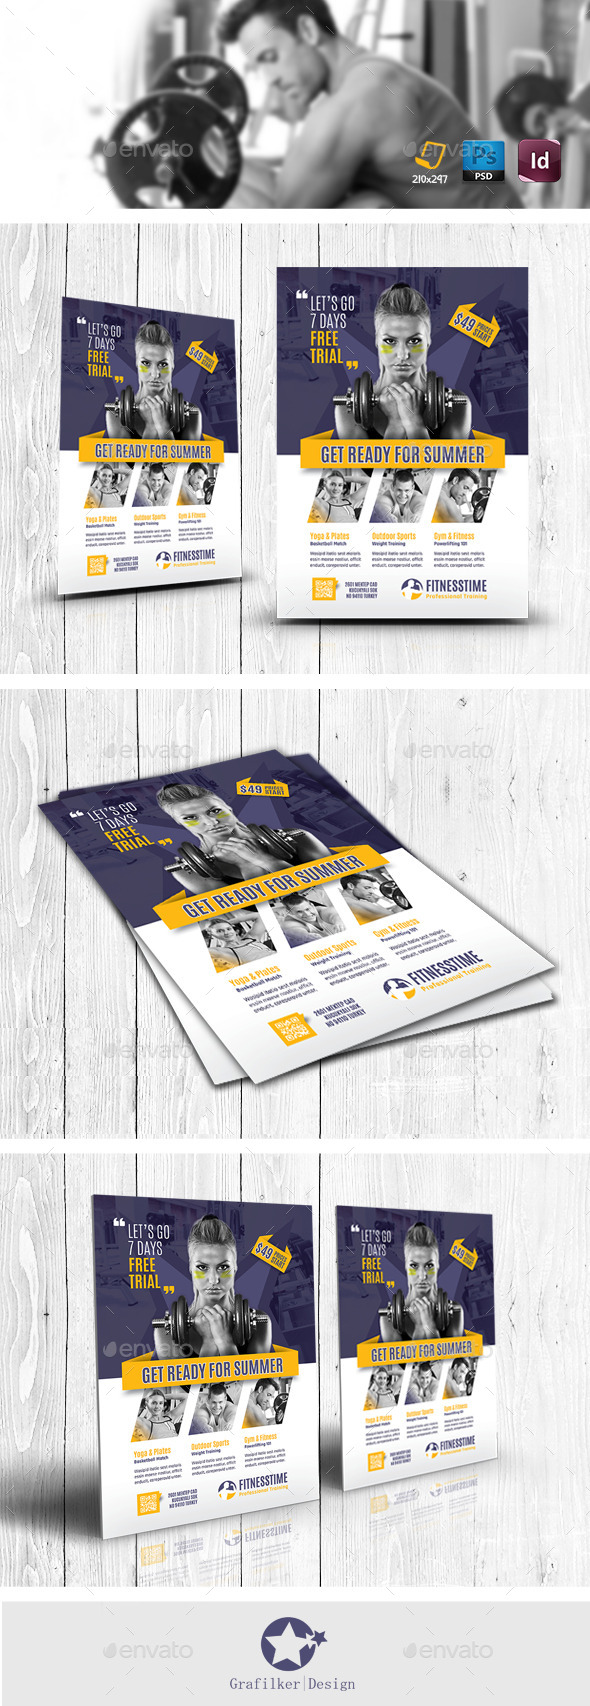 Fitness Time Flyer Templates - Corporate Flyers